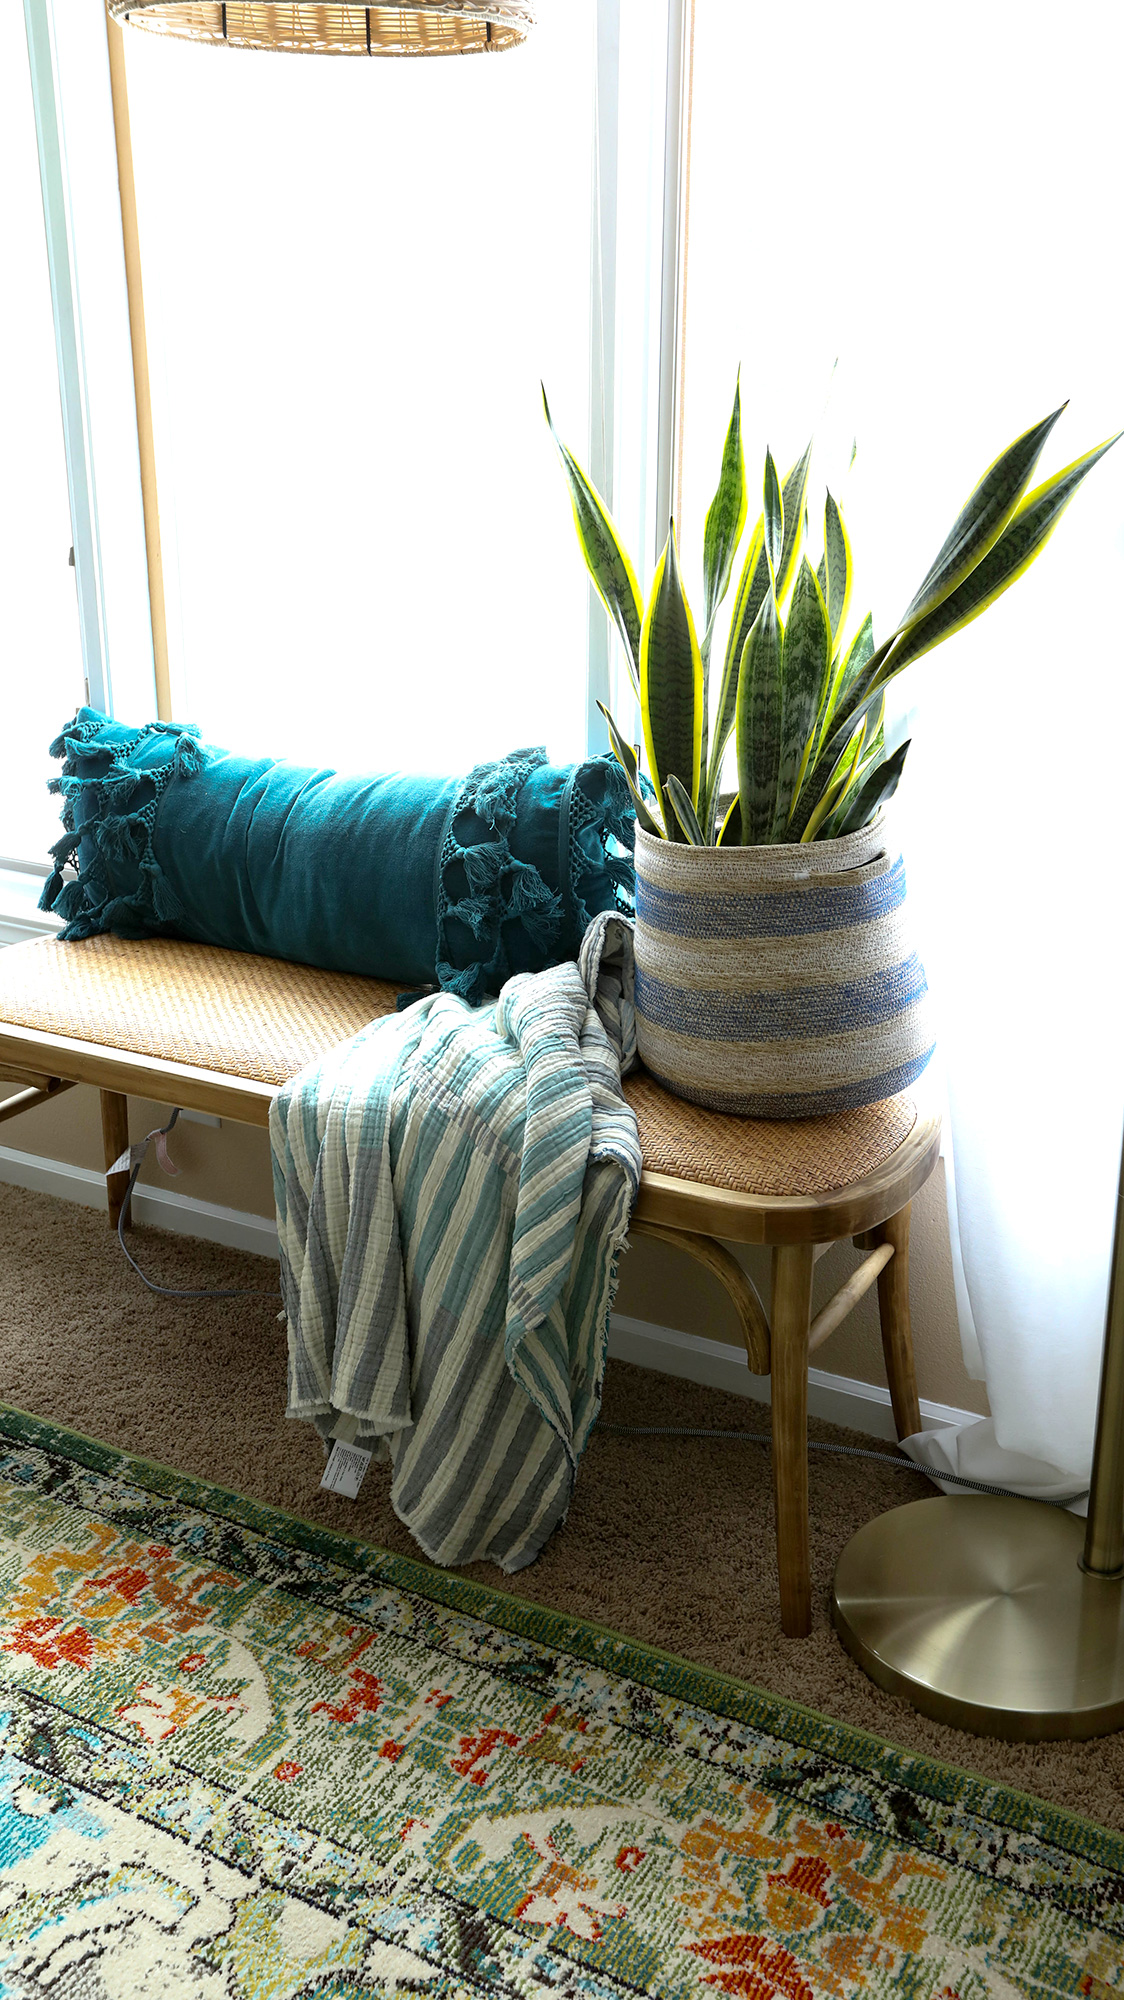 Bench in front of window with a plant